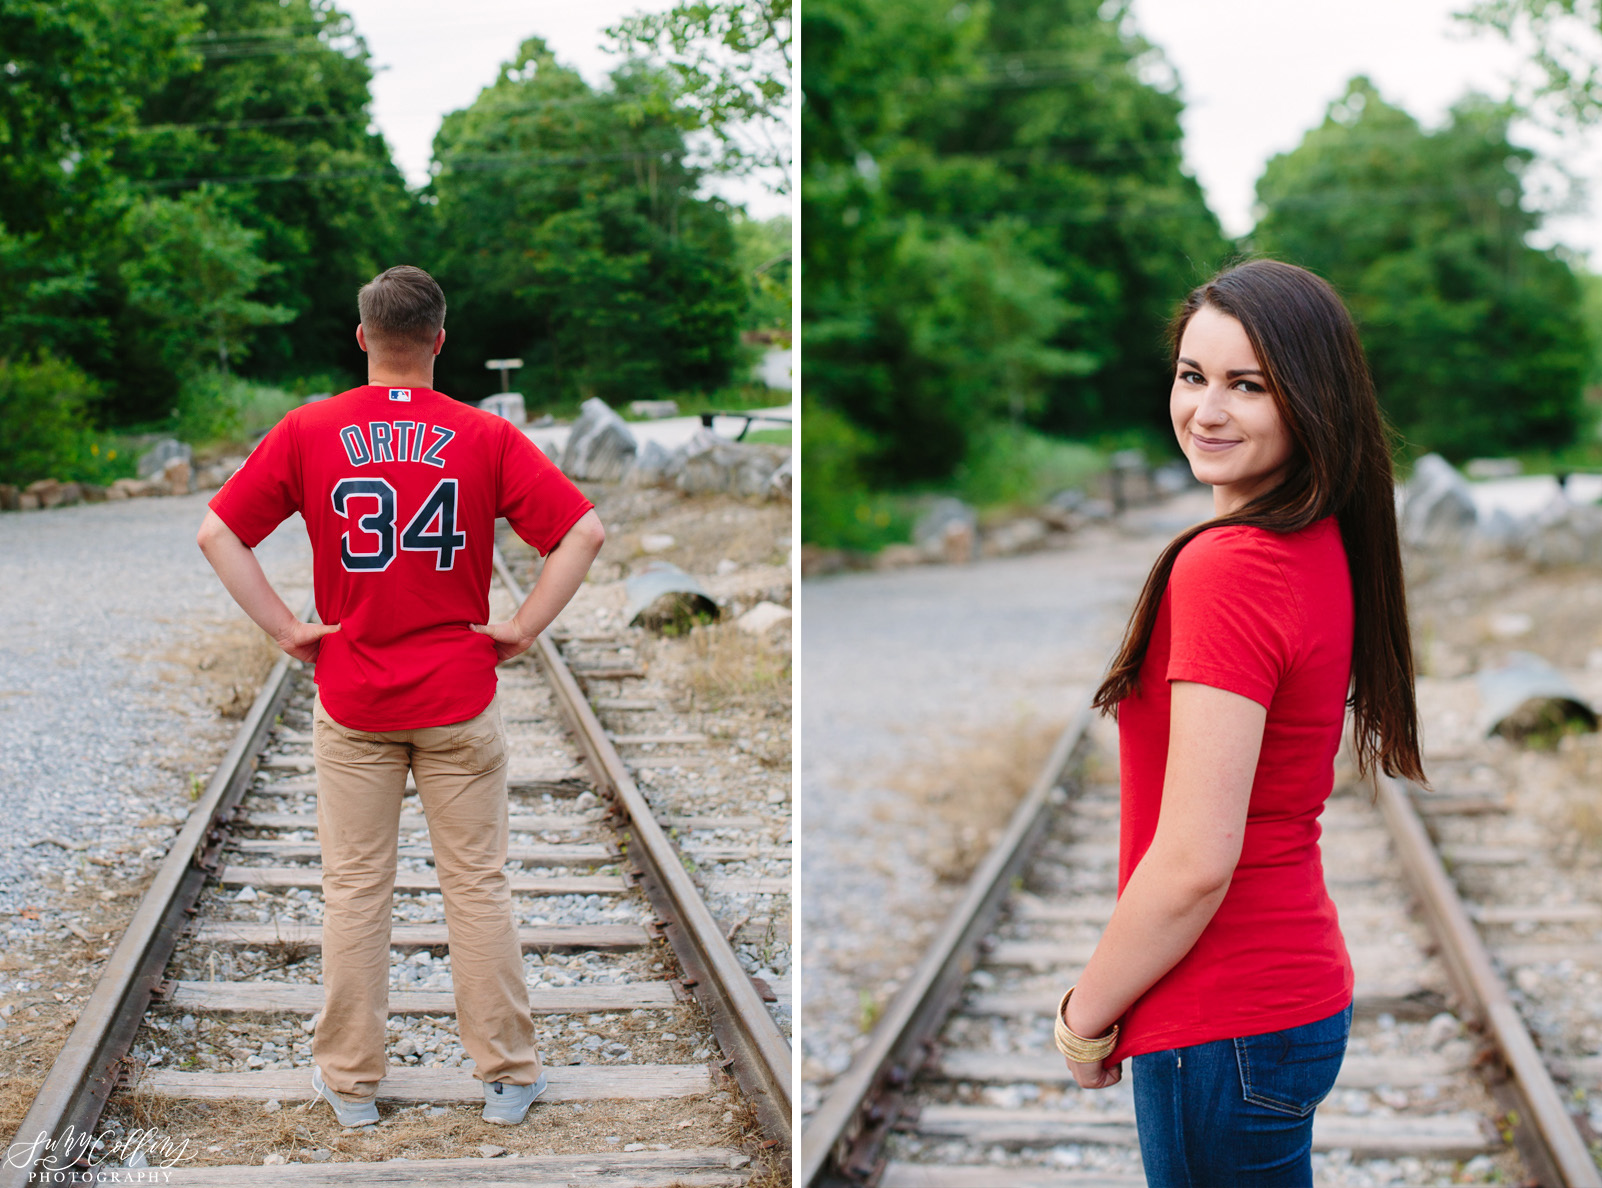 poses, couples, outdoor, meads quarry, Knoxville, Tennessee, engagement, sunset, evening, love, vibrant, colorful, bright, creative, romantic, natural, light and airy, natural light, passion, inspiration, intimate, outfits, fountain, woods, pond, park, jersey